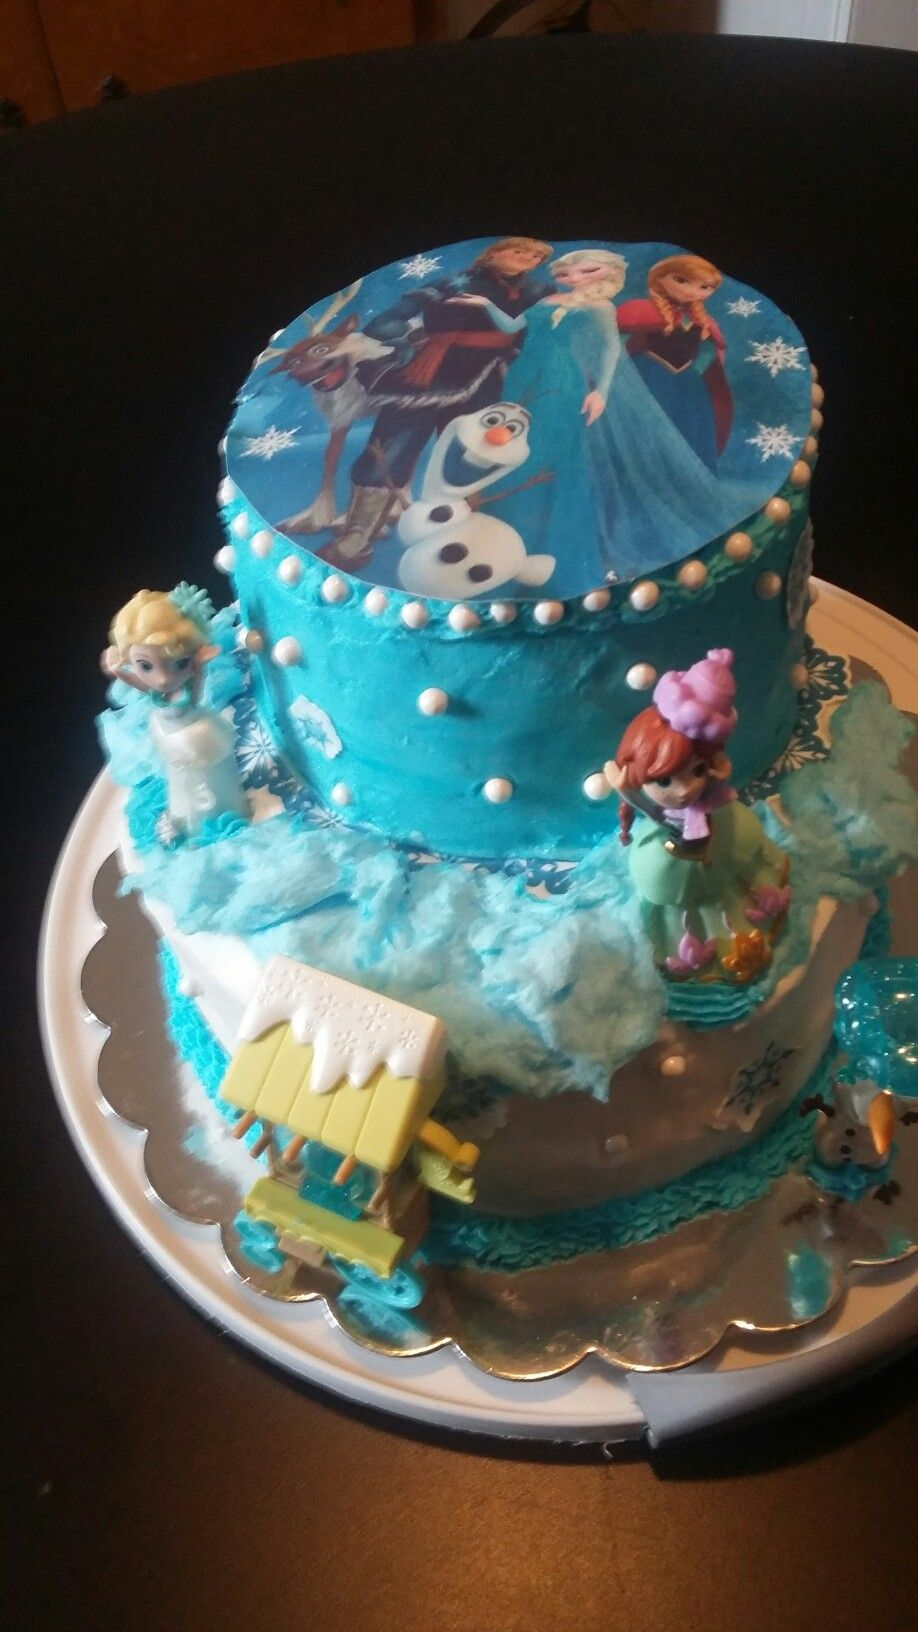 A birthday cake for a customer daughter the cartoon characters